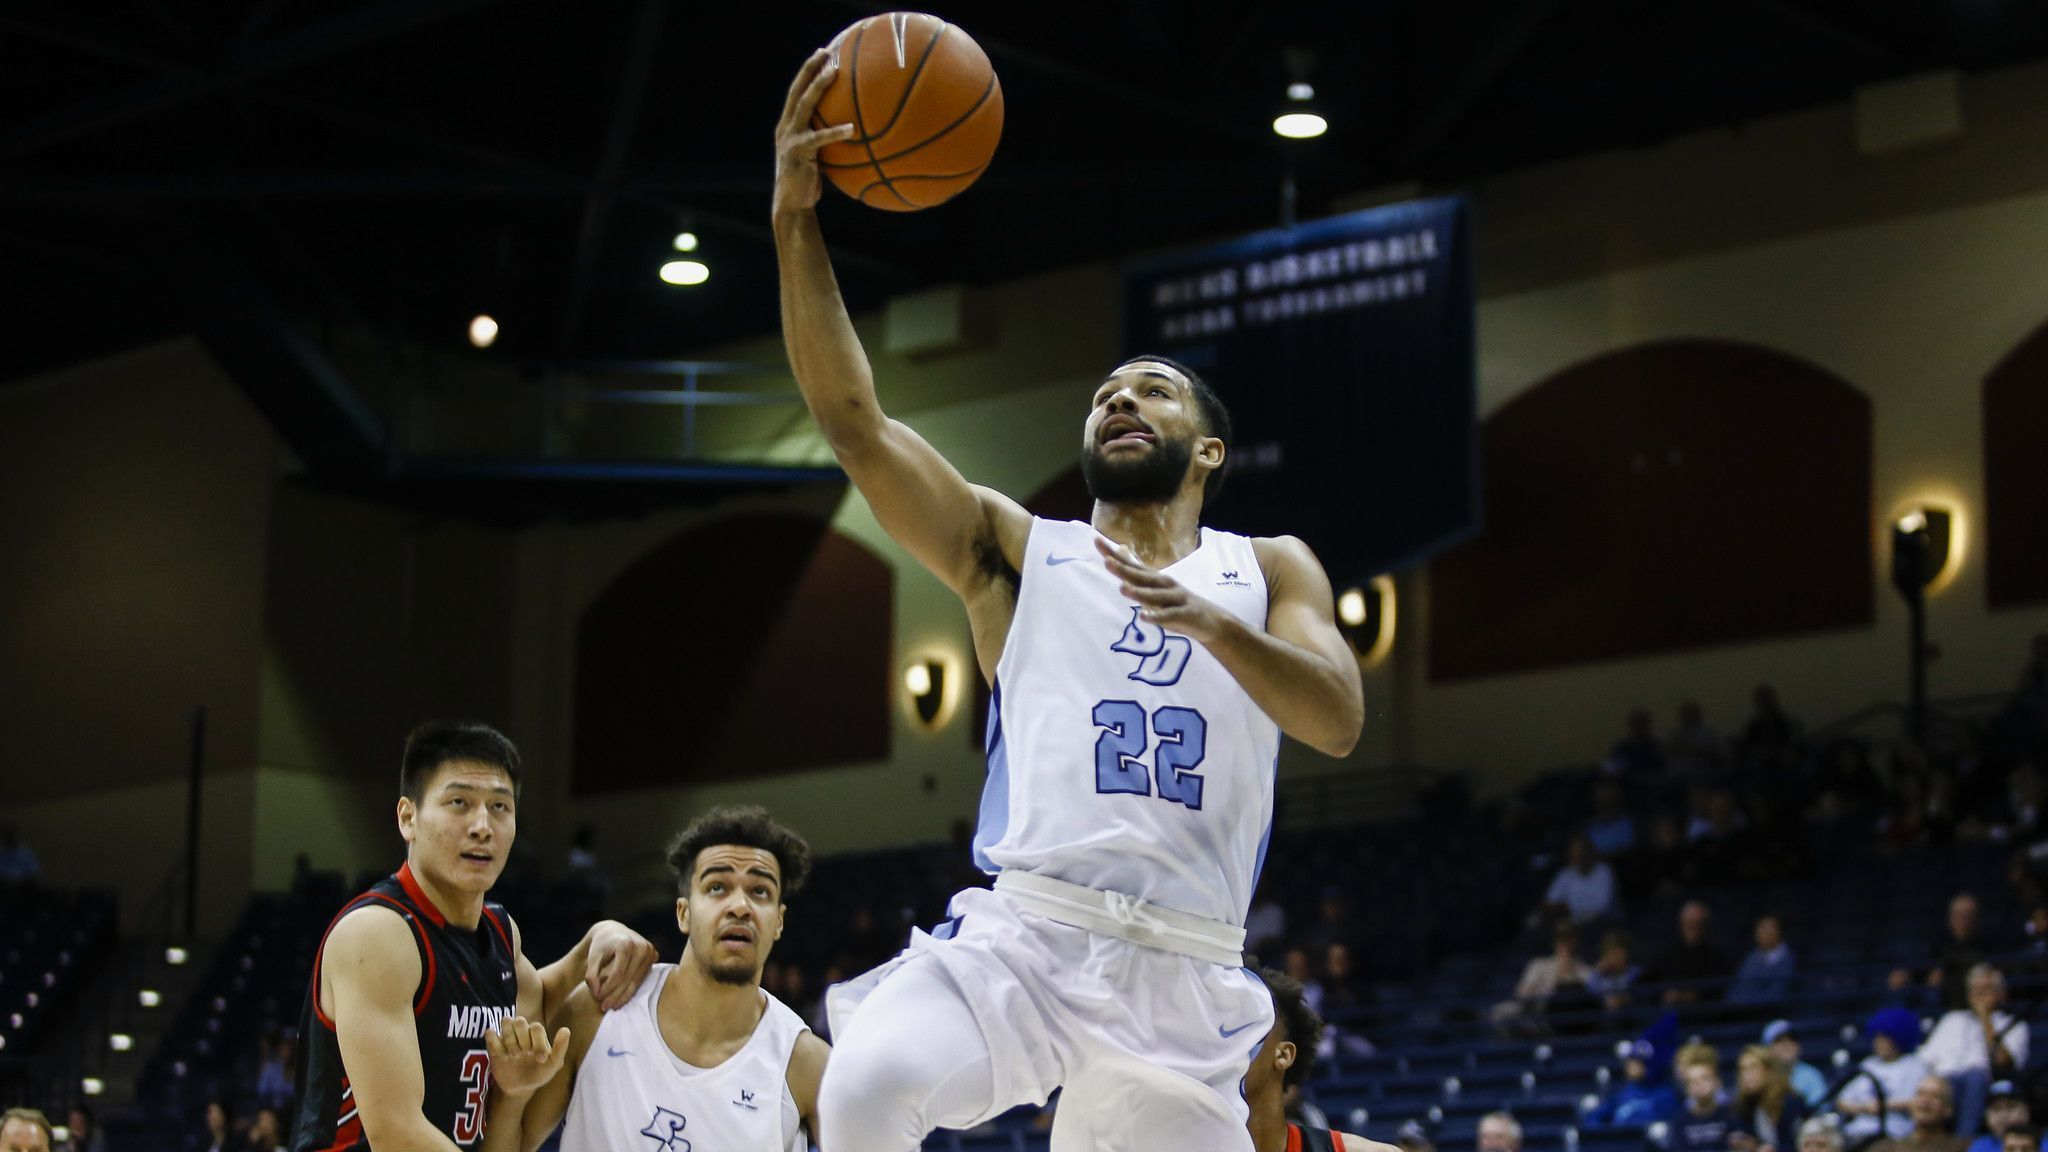 USD wins with defense, stays alive in WCC